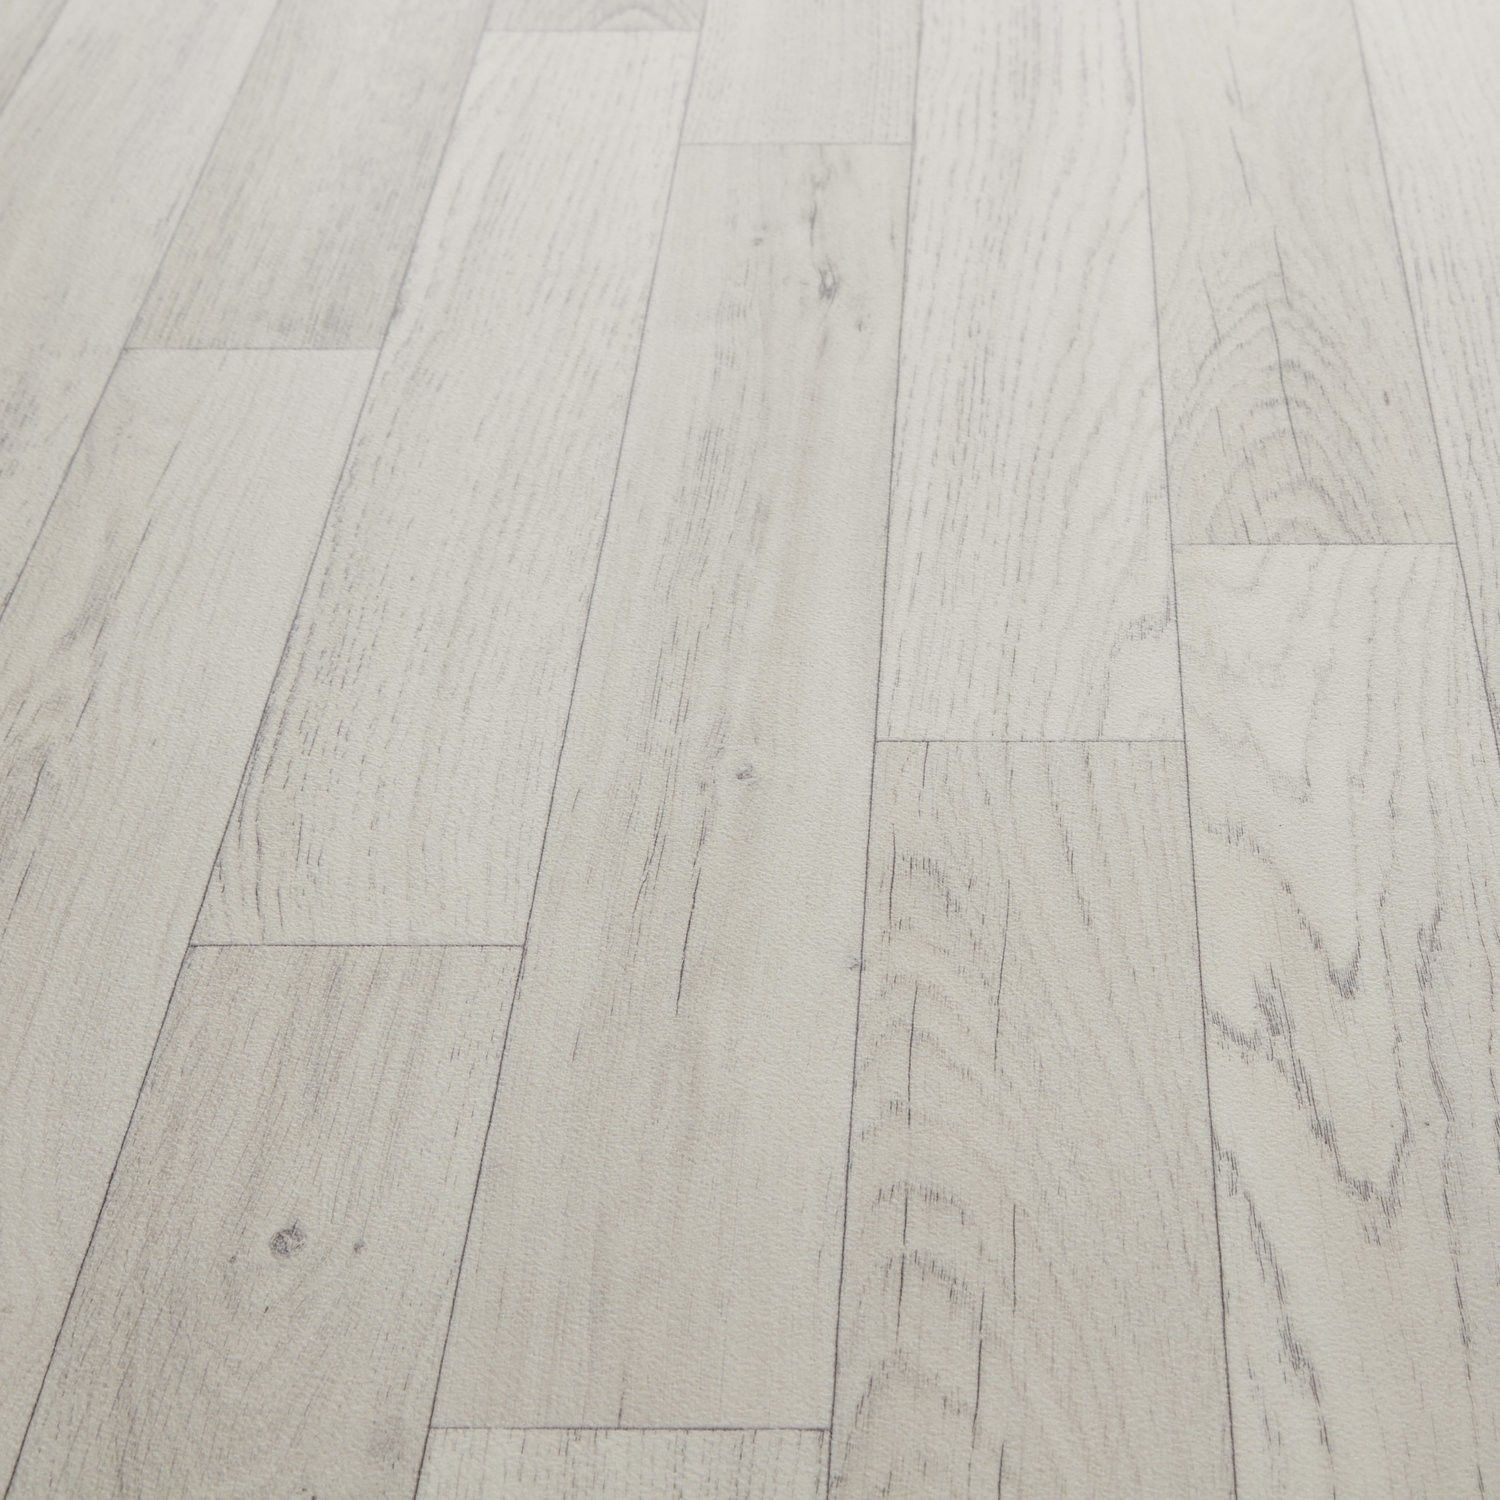 Laminate Tile Effect Flooring For Kitchen Mardi Gras 503 Chianti White Wood Effect Vinyl Flooring Bathroom